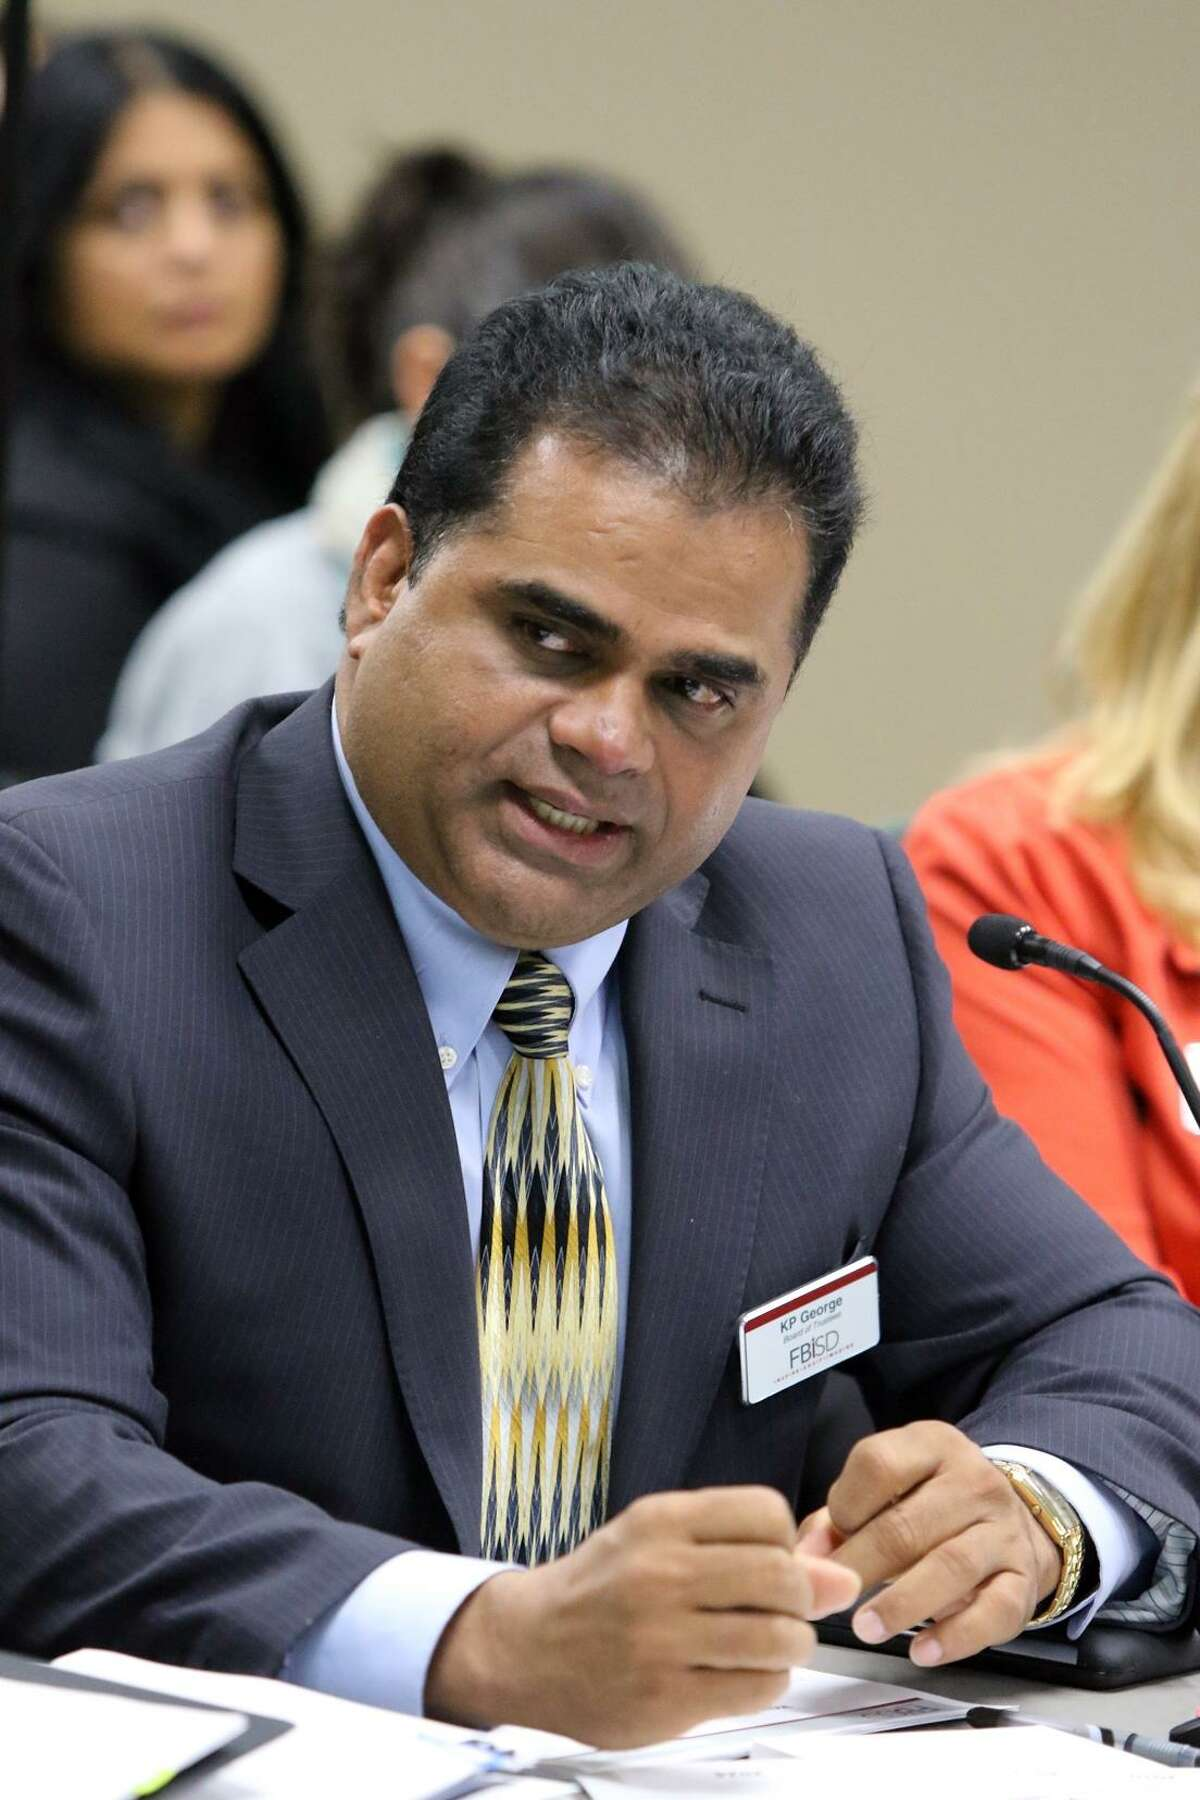 Former Fort Bend ISD Trustee KP George asks questions about the changes proposed to the feeder patterns and attendance boundaries of Fort Bend ISD schools in this file photo.